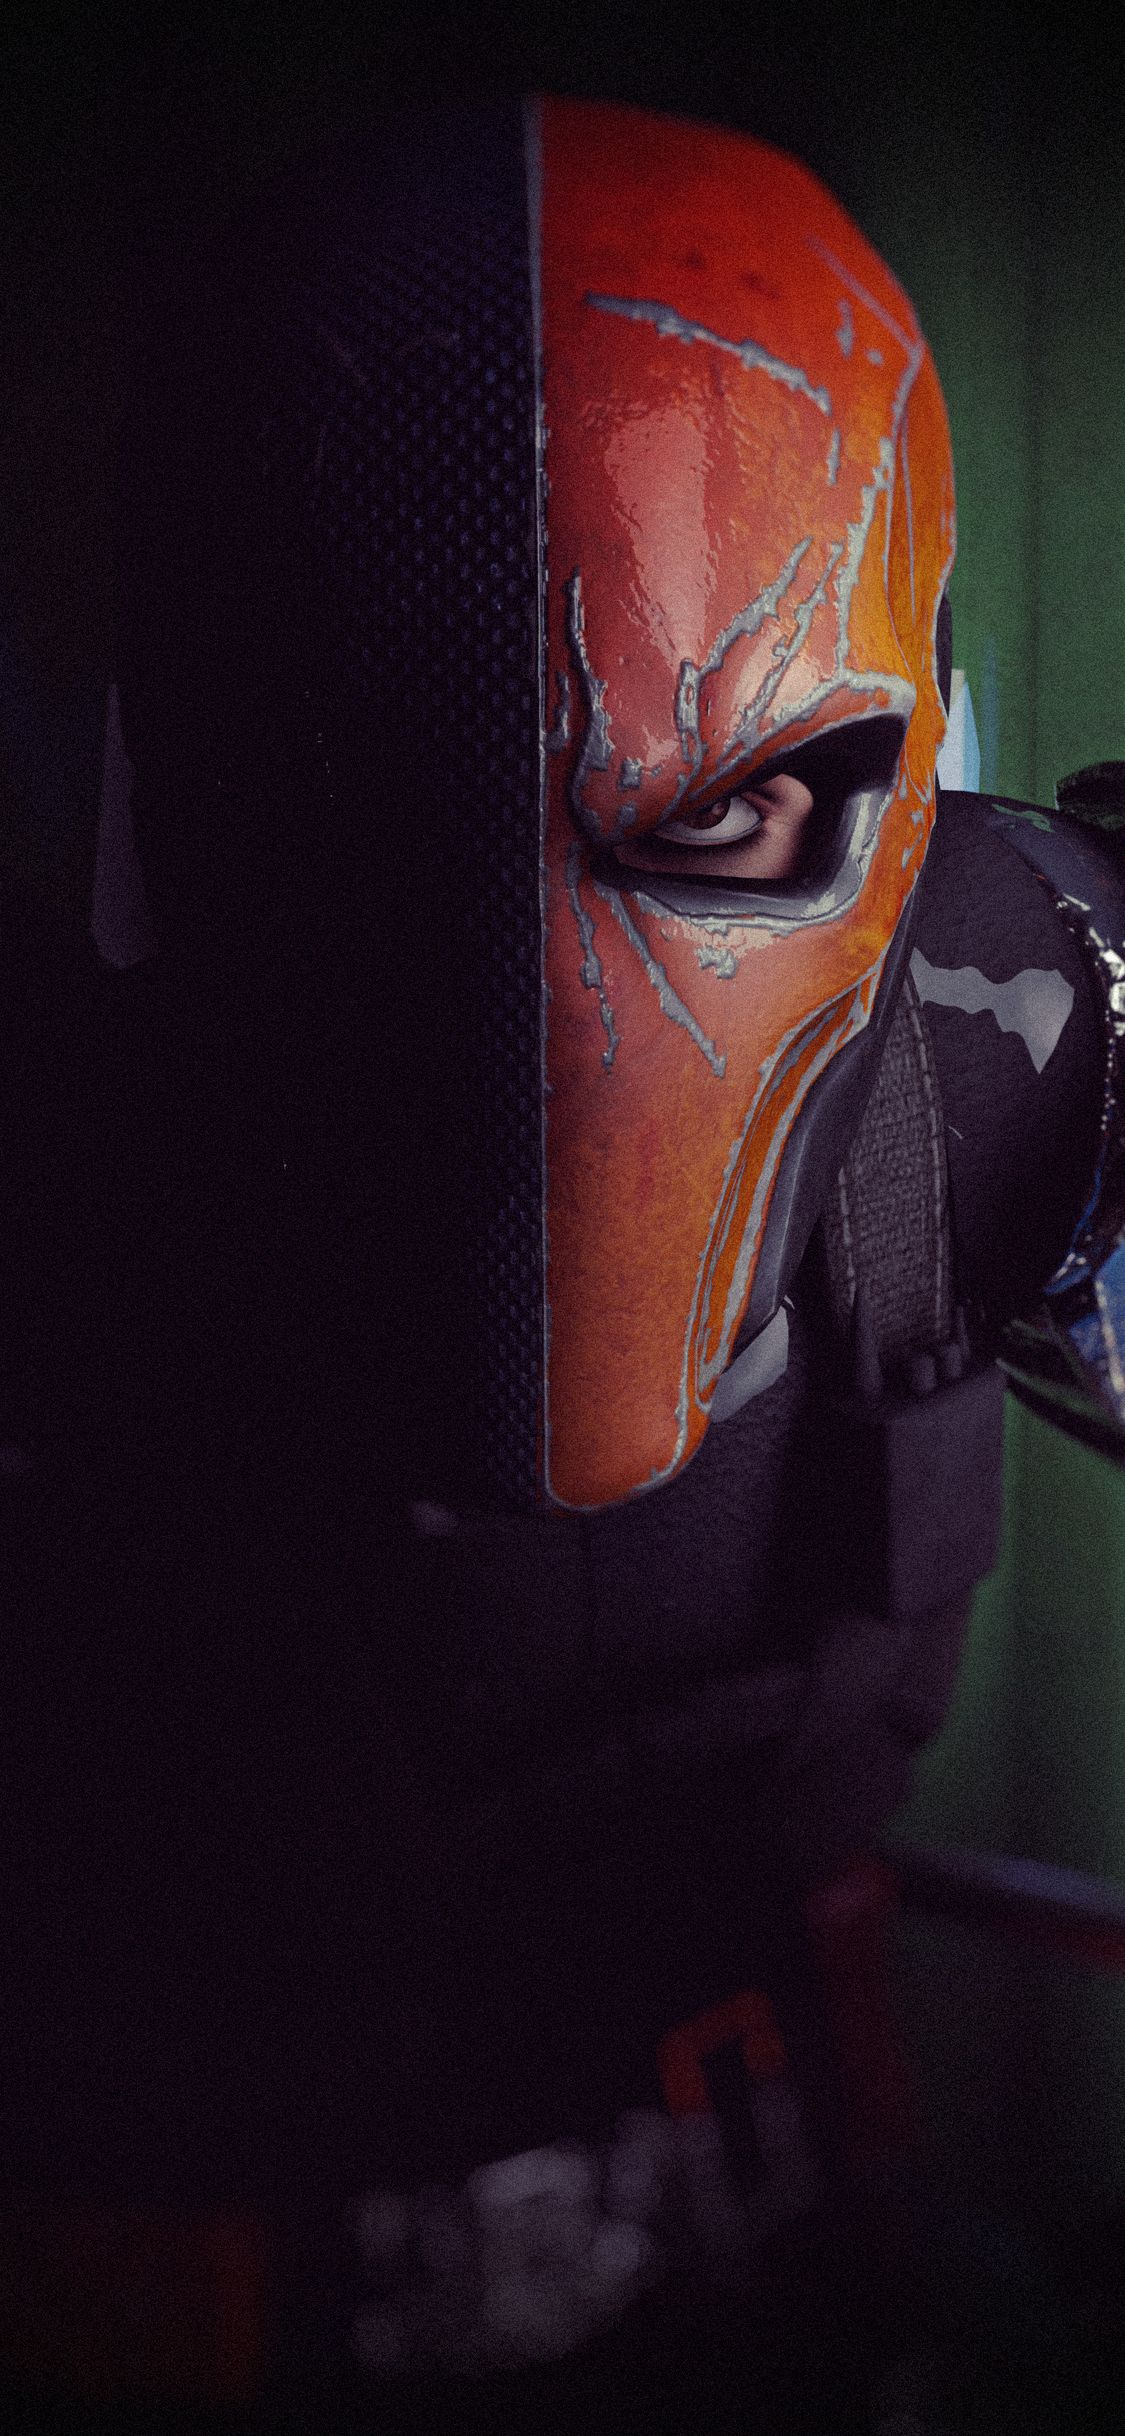 1125x2436 Deathstroke Iphone Xs Iphone 10 Iphone X Hd 4k Wallpapers Images Backgrounds Photos And Pictures En 2020 Marvel Guerreros Armaduras